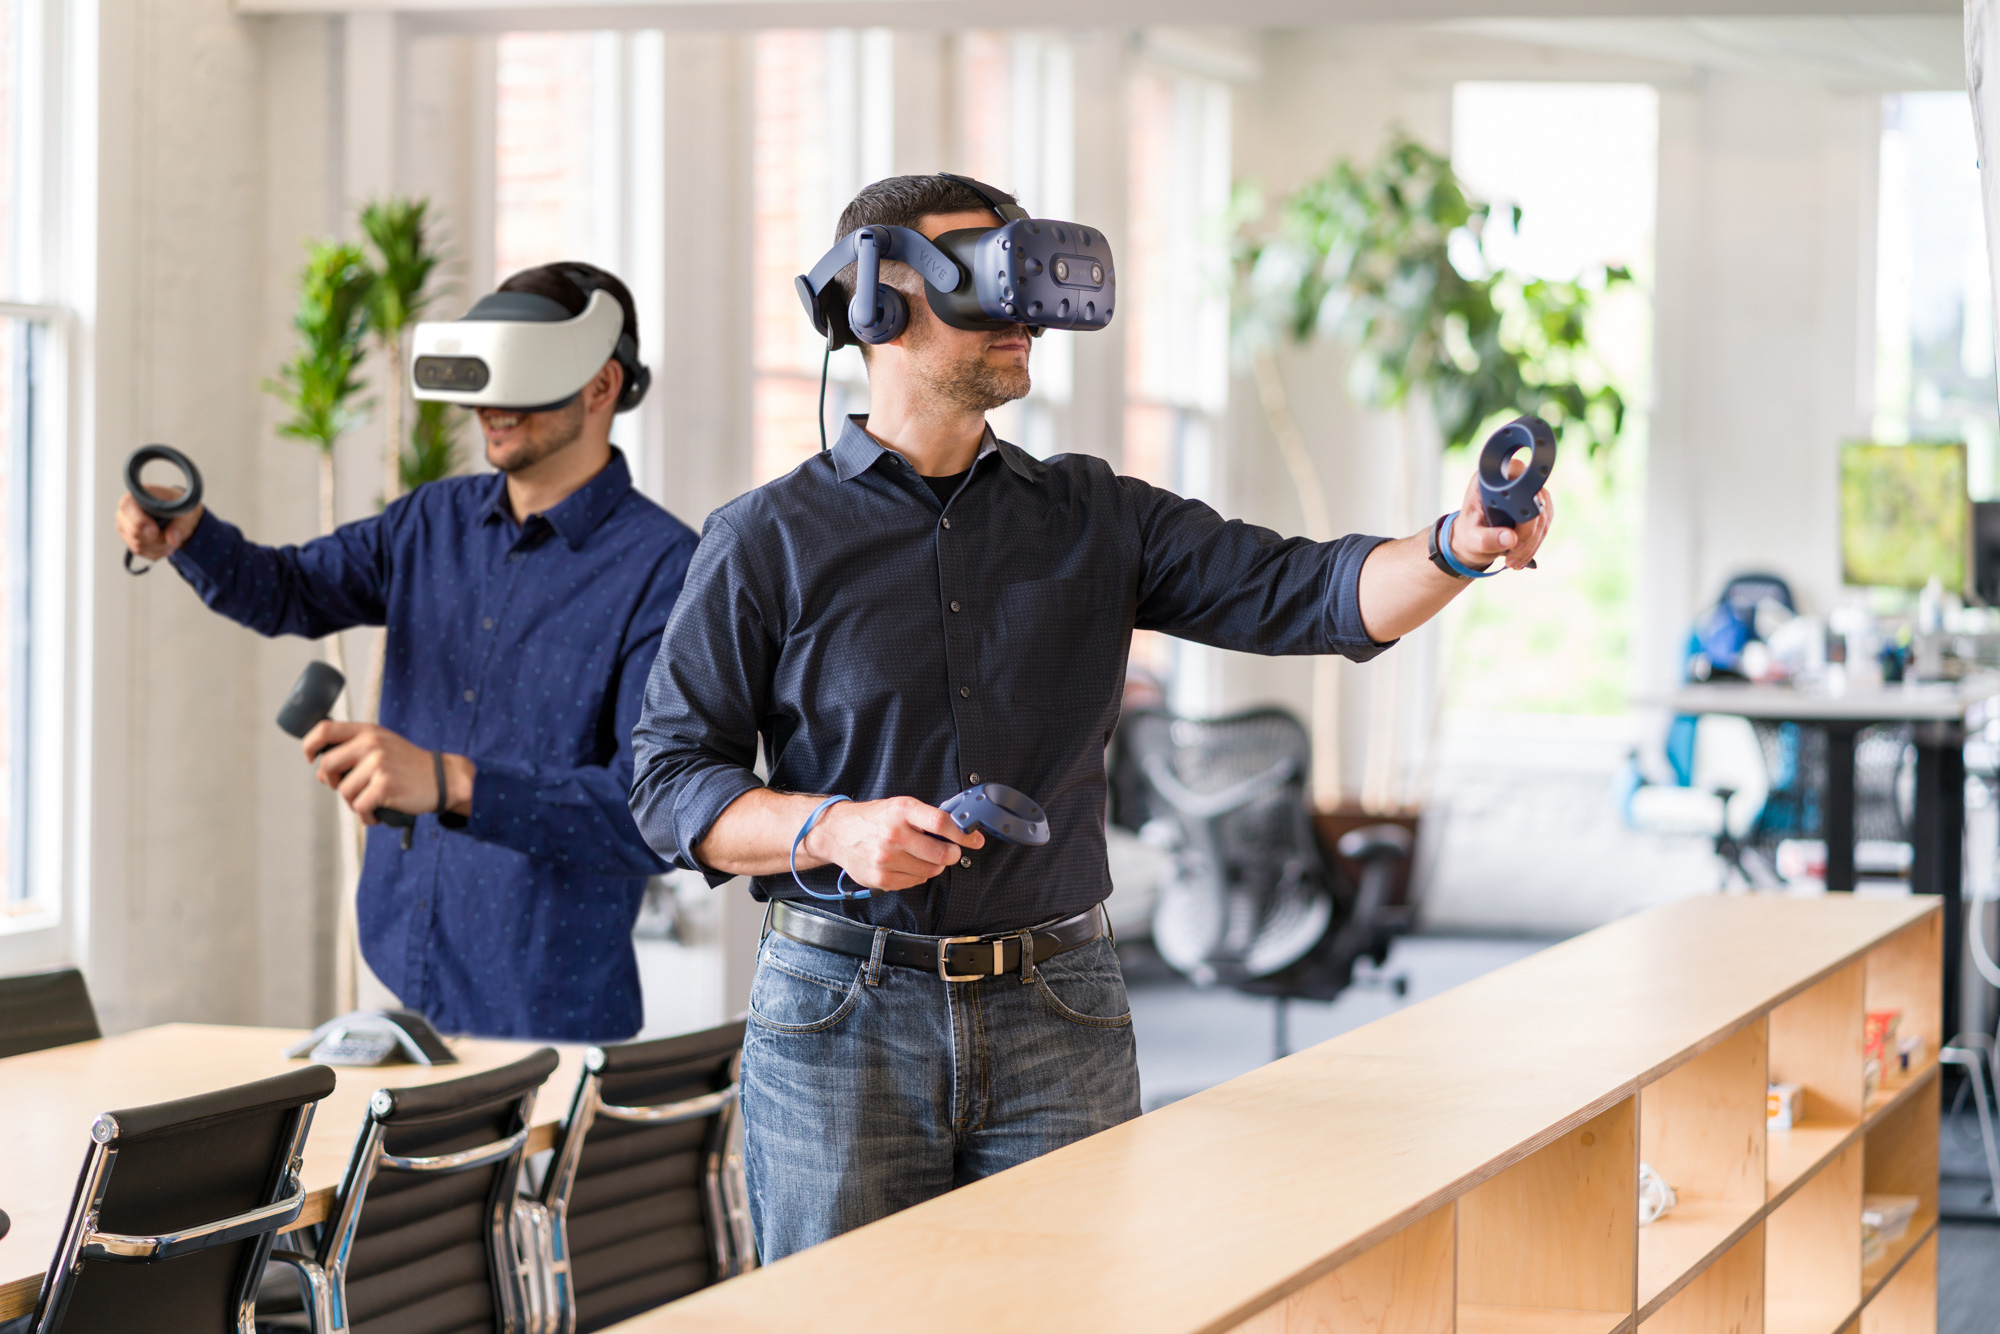 HTC VIVE Pro Eye (PCVR) and VIVE Focus Plus (All-In-One) are terrific VR headsets for your business.